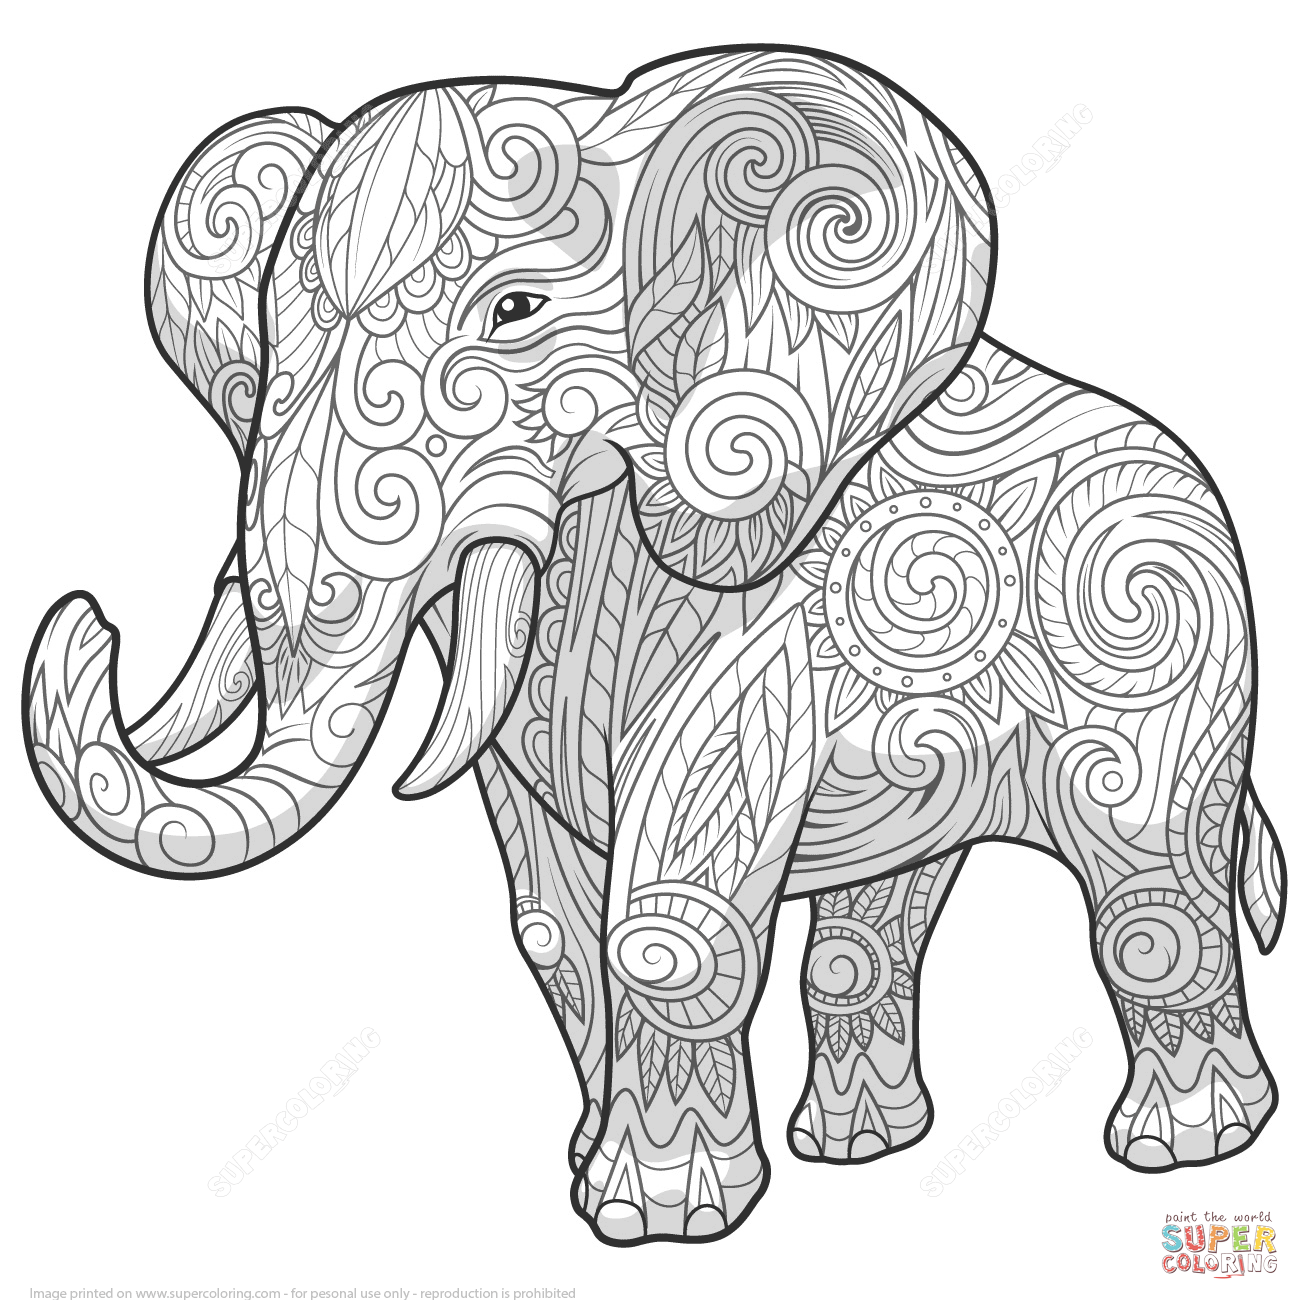 Zentangle Coloring Pages | Elephant Ethnic Zentangle coloring page ...